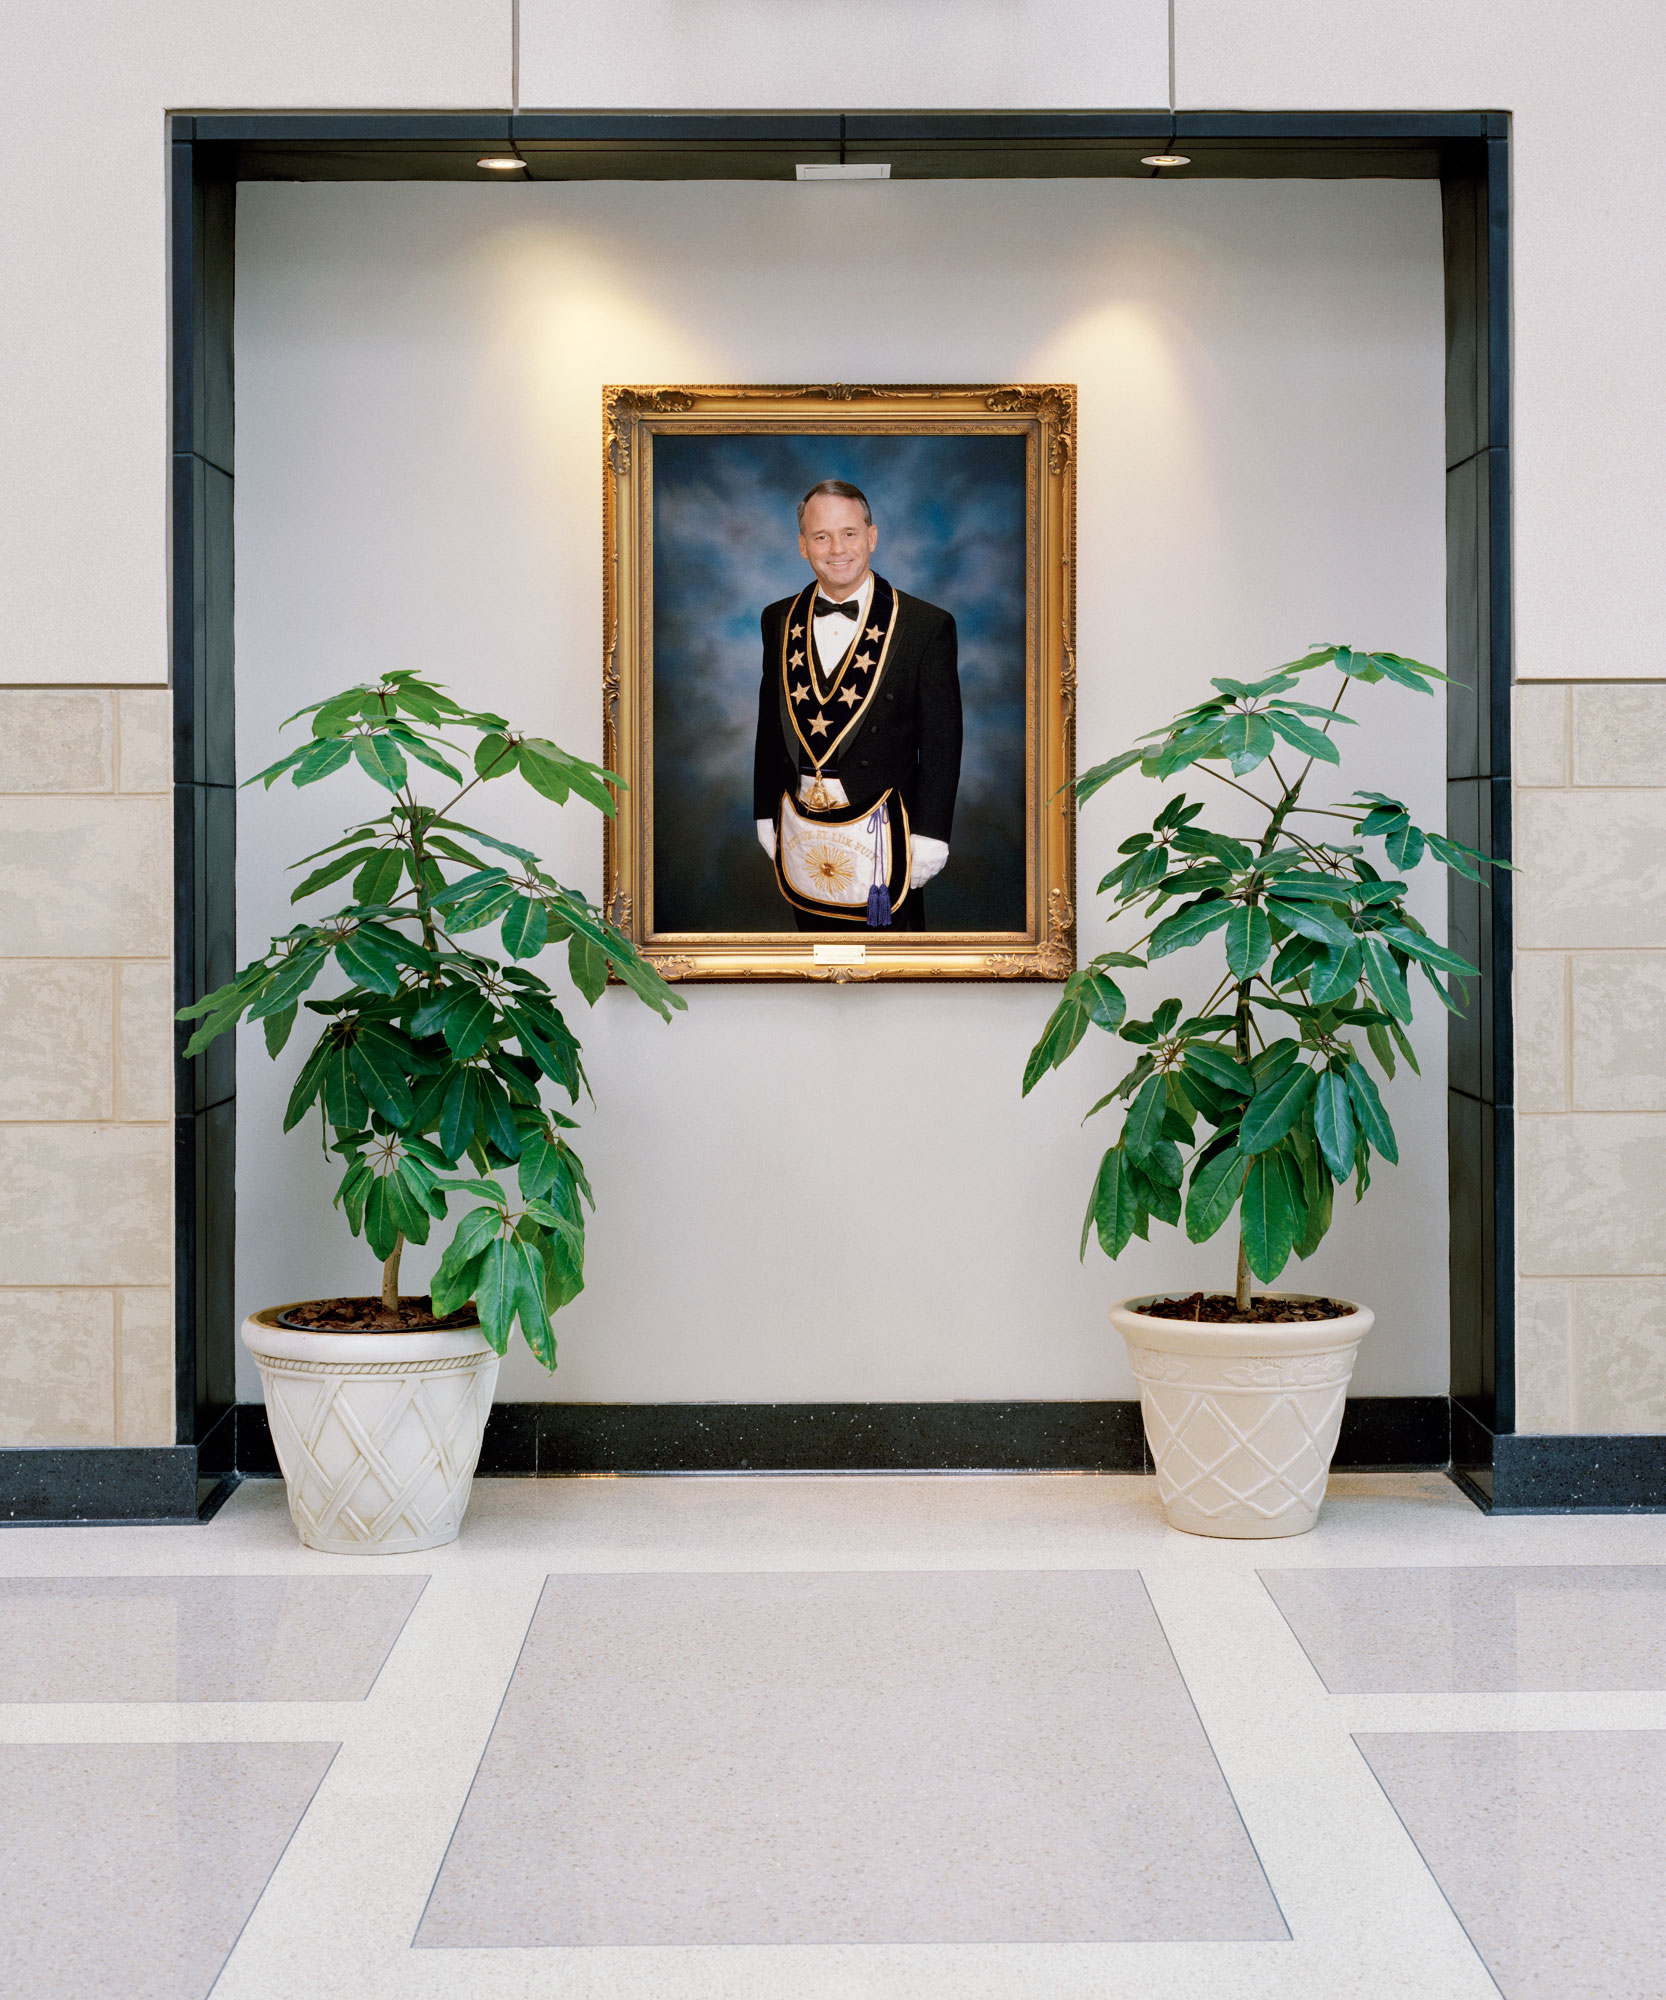 Ronald A. Aungst, 116th Right Worshipful Grand Master (2006-2007)